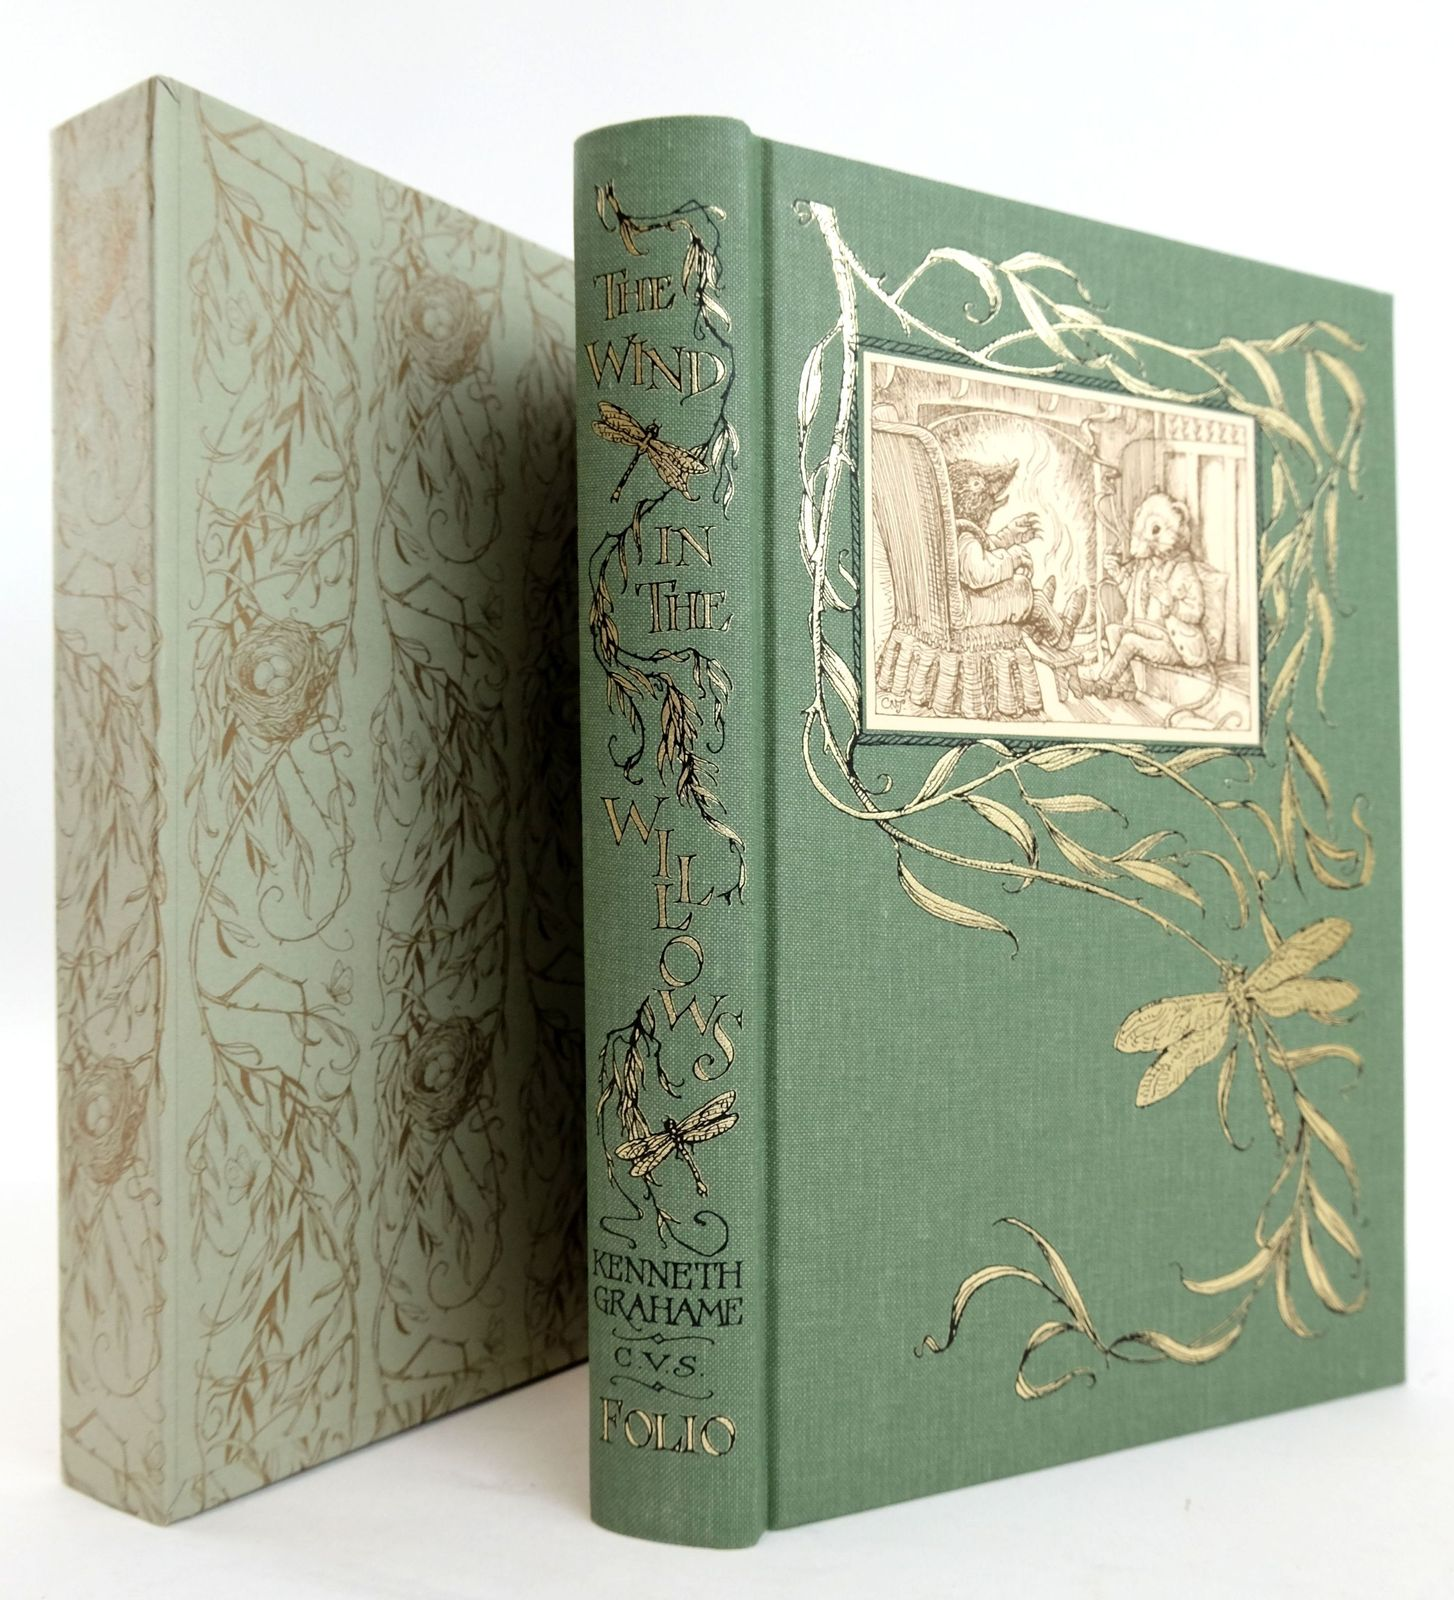 Photo of THE WIND IN THE WILLOWS written by Grahame, Kenneth illustrated by Van Sandwyk, Charles published by Folio Society (STOCK CODE: 1820237)  for sale by Stella & Rose's Books